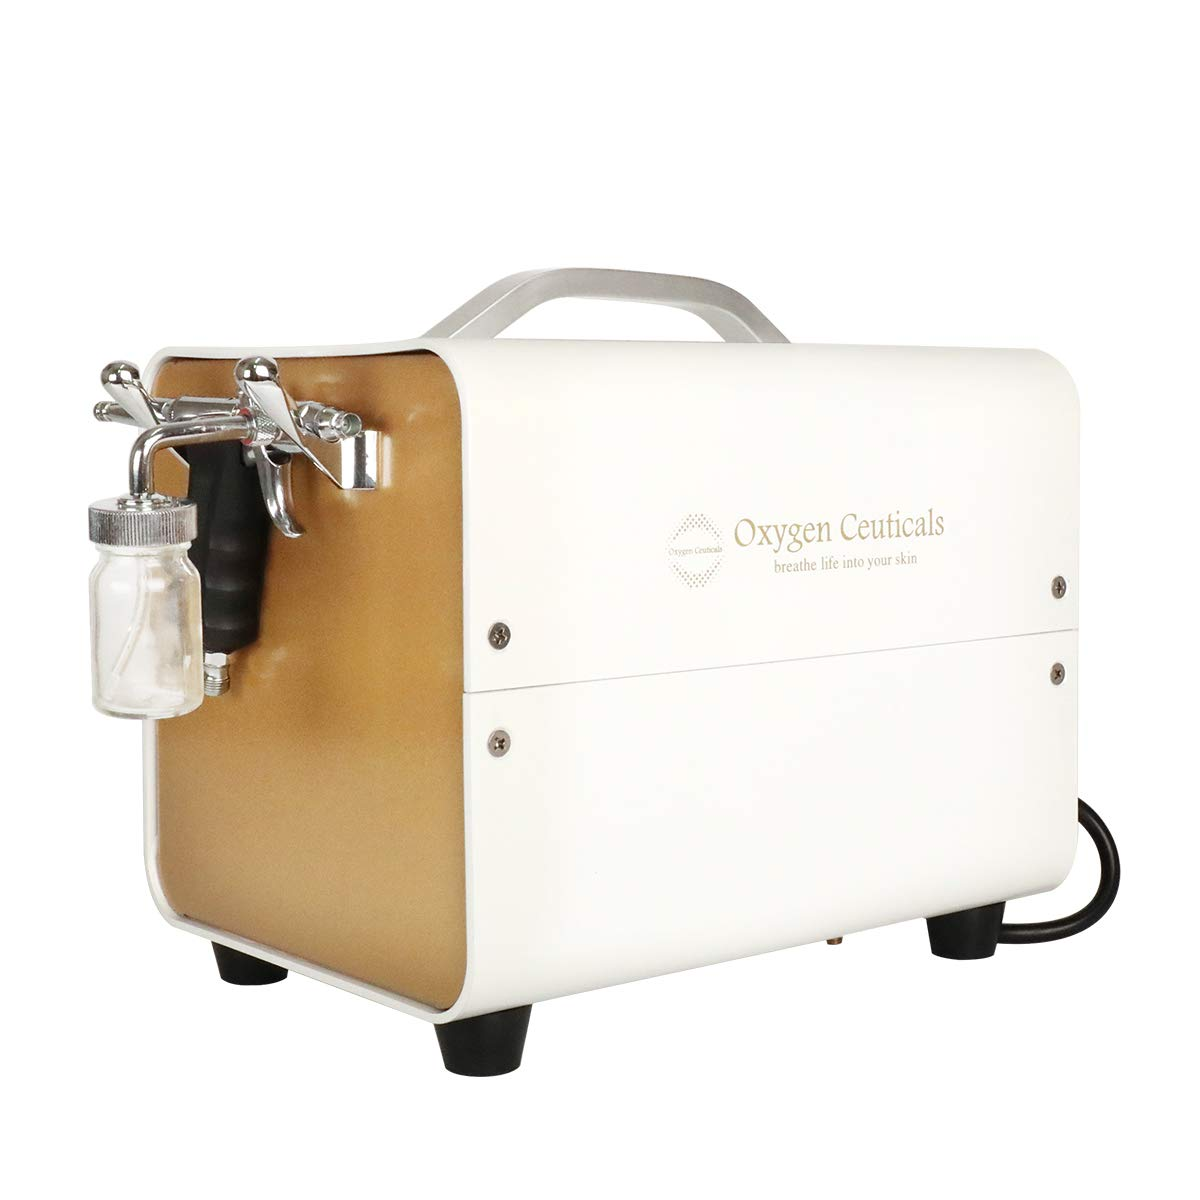 OZ Portable, Oxygen Facial Machine, Oxygen Therapy Equipment, Made in Korea